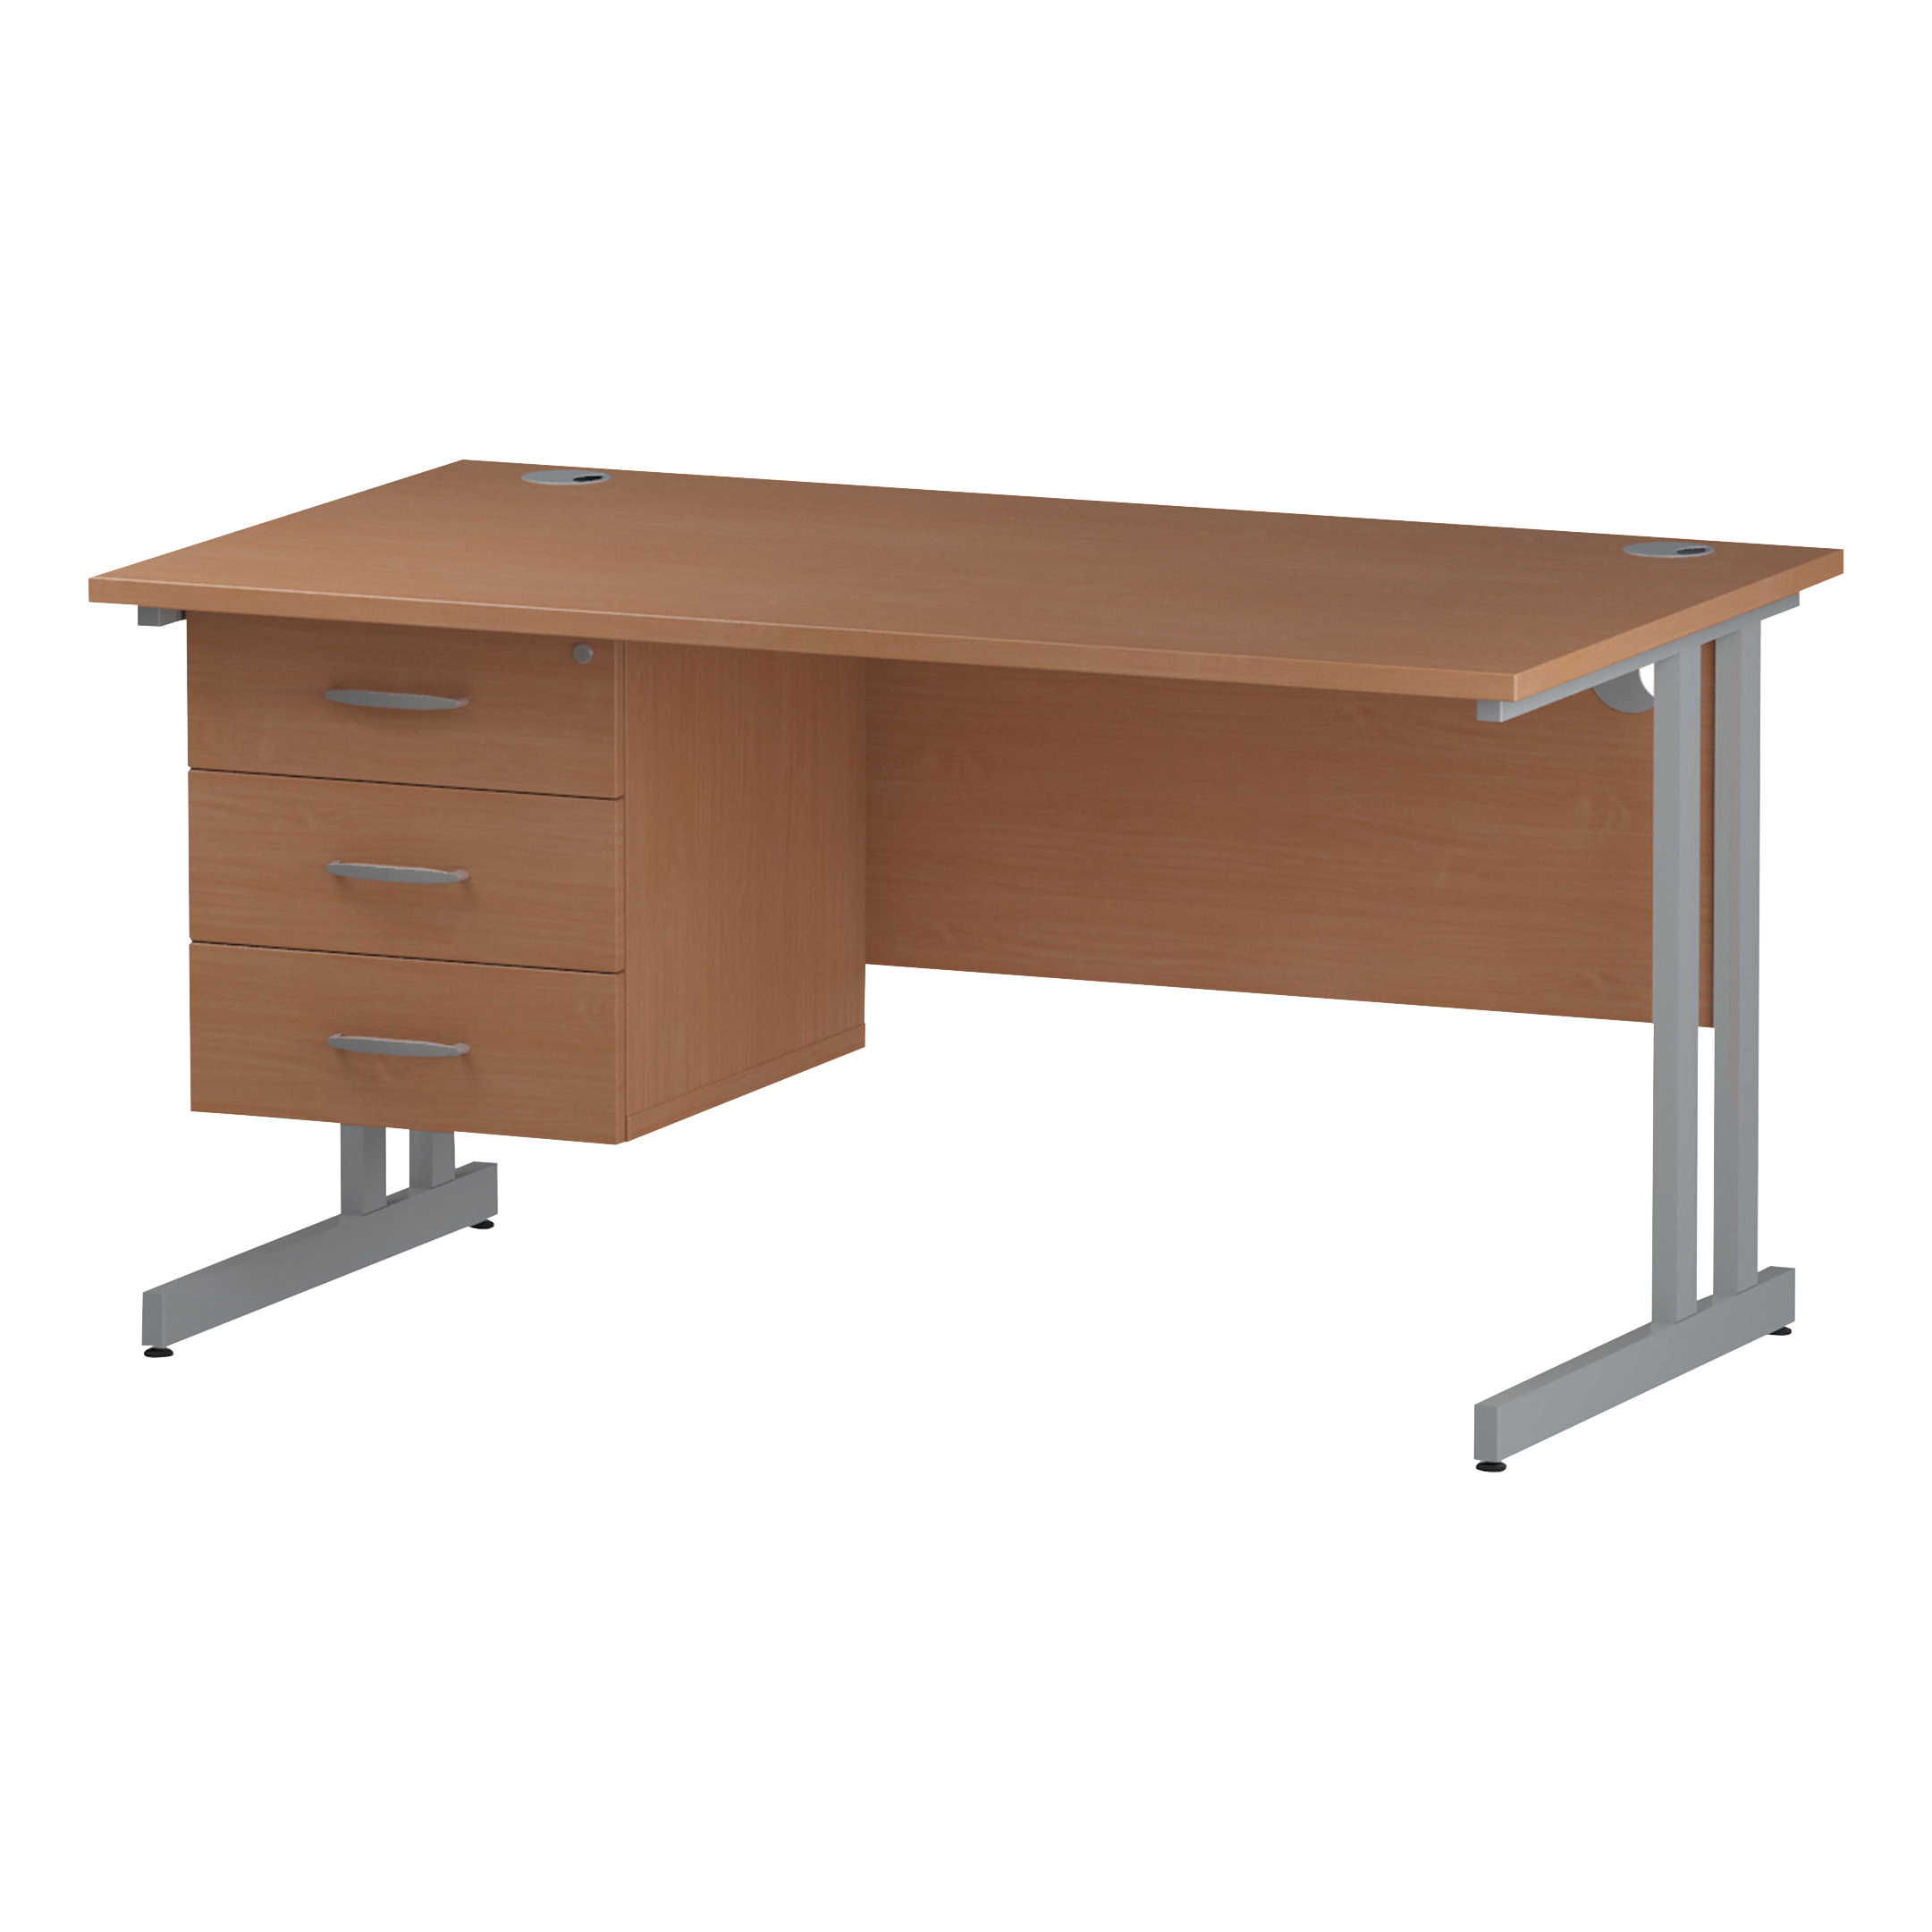 Trexus Rectangular Desk Silver Cantilever Leg 1400x800mm Fixed Pedestal 3 Drawers Beech Ref I001697